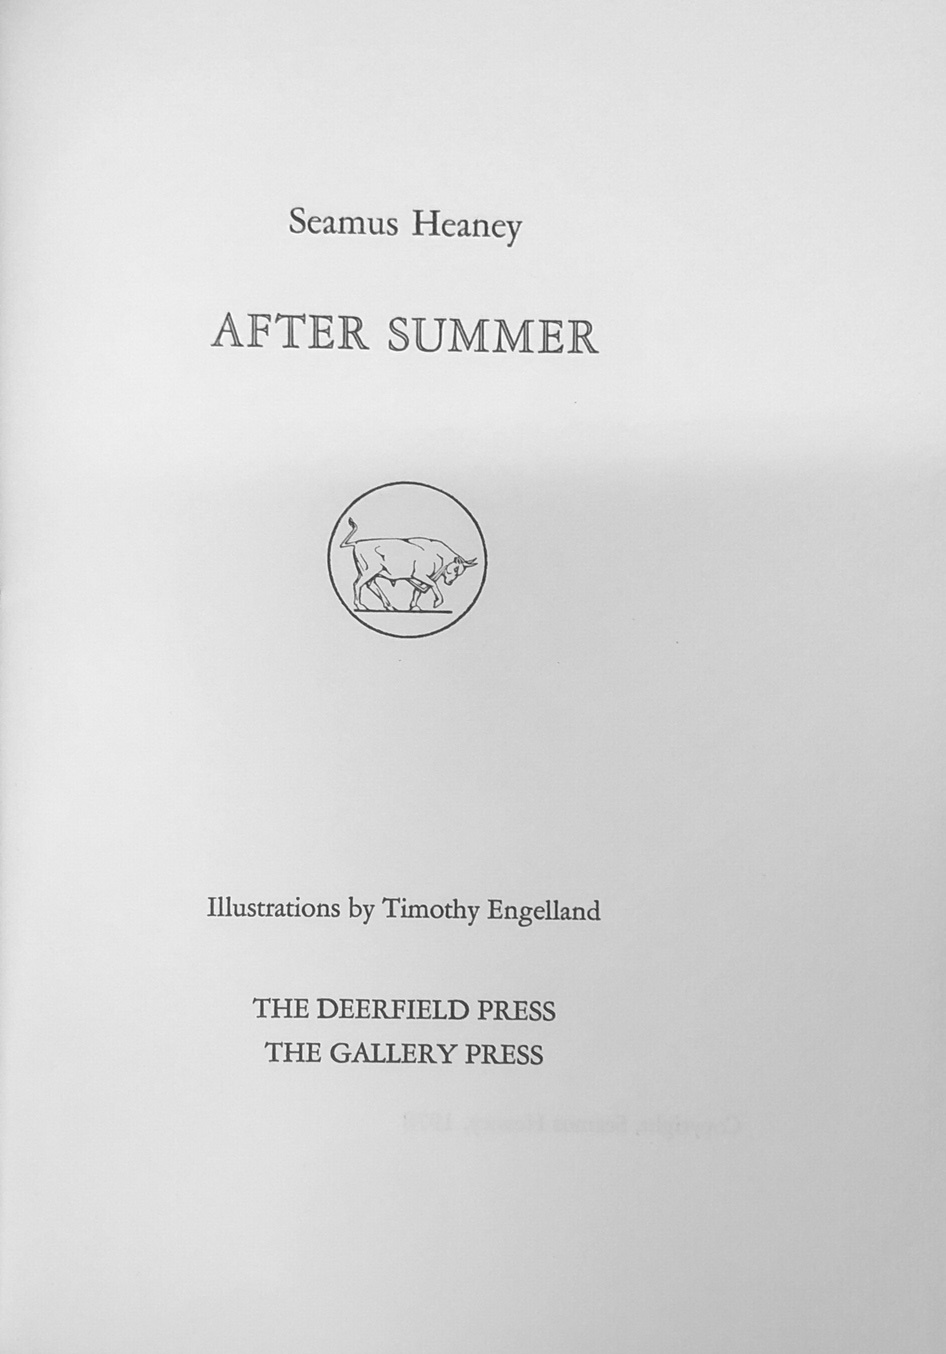 Lot 31 - Heaney (Seamus) After Summer, roy 8vo Deerfield and Gallery Press 1978. Limited Edn.